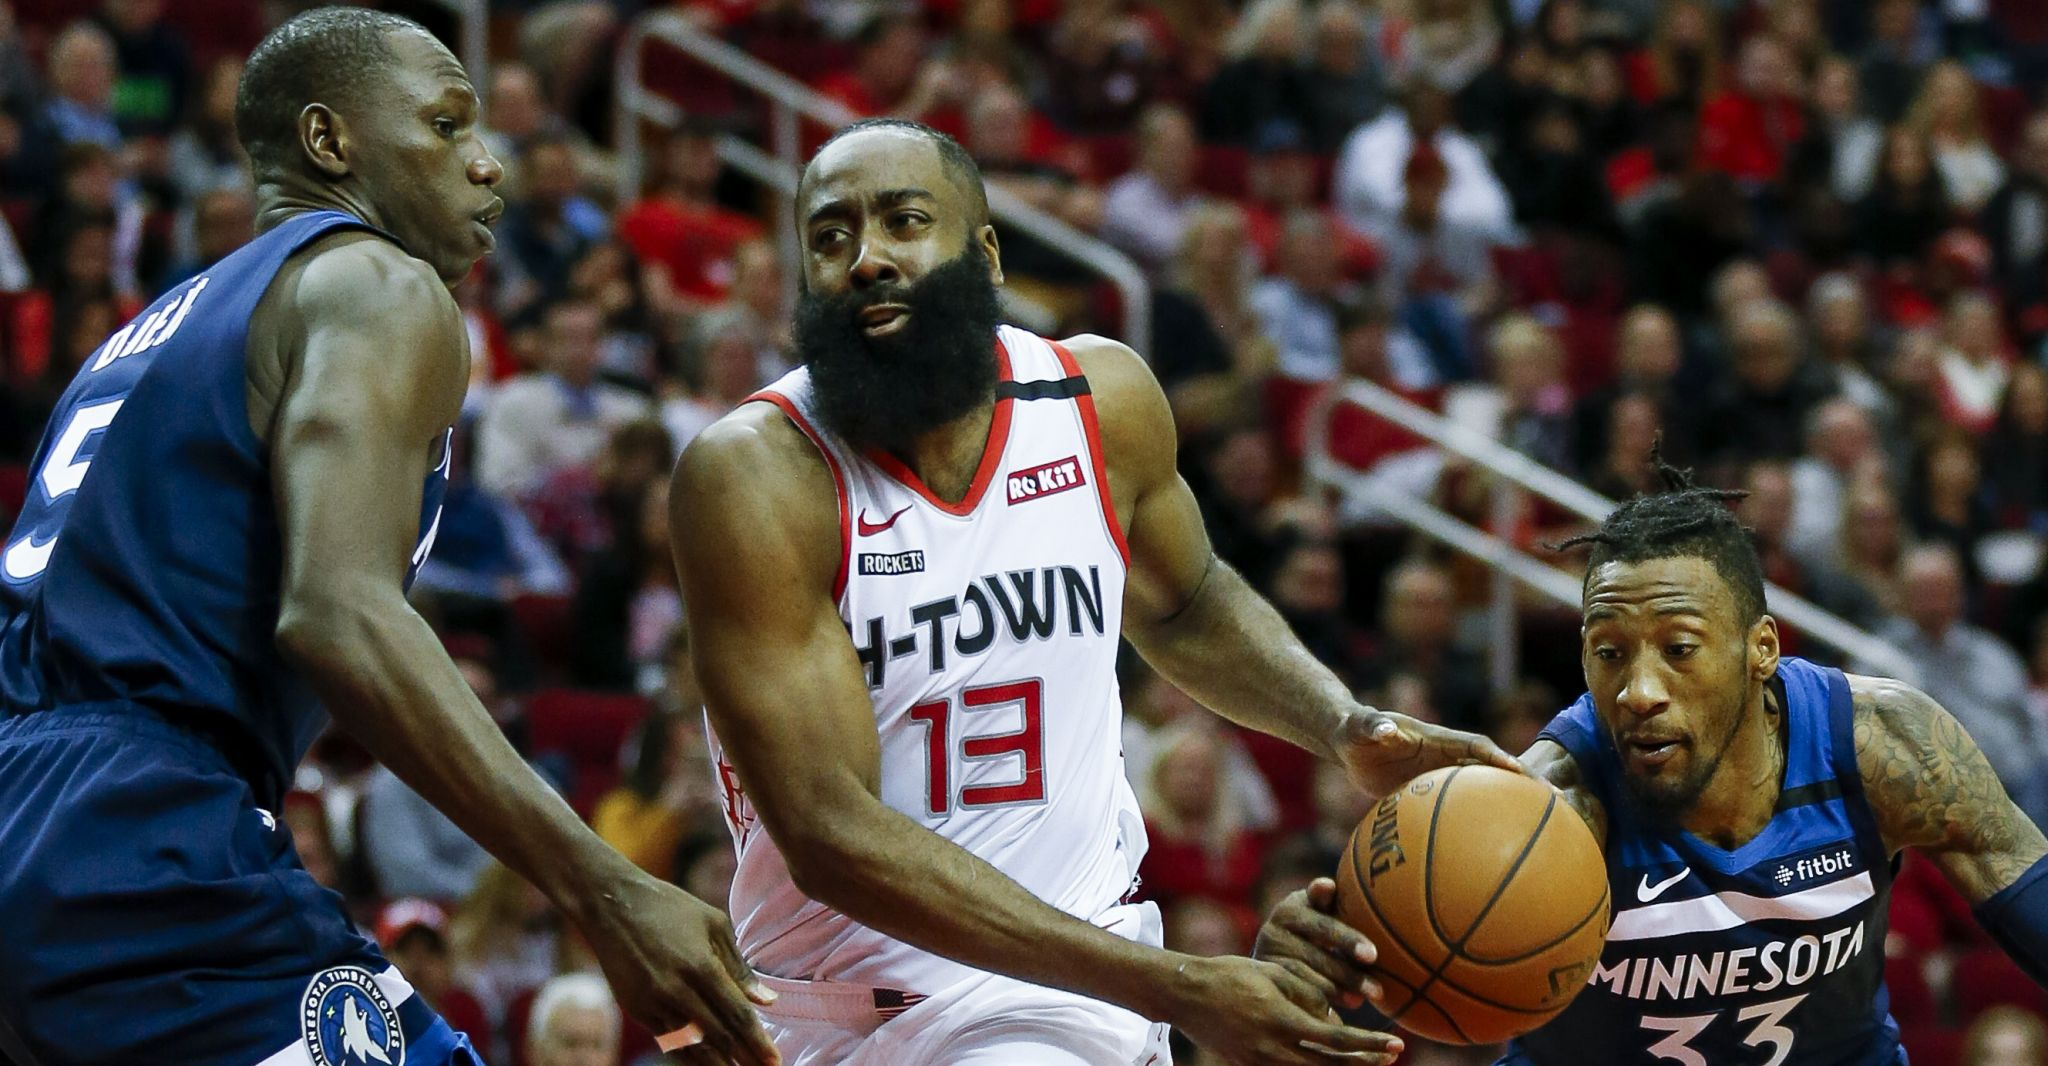 James Harden reaches 20,000 points as Rockets topple Timberwolves